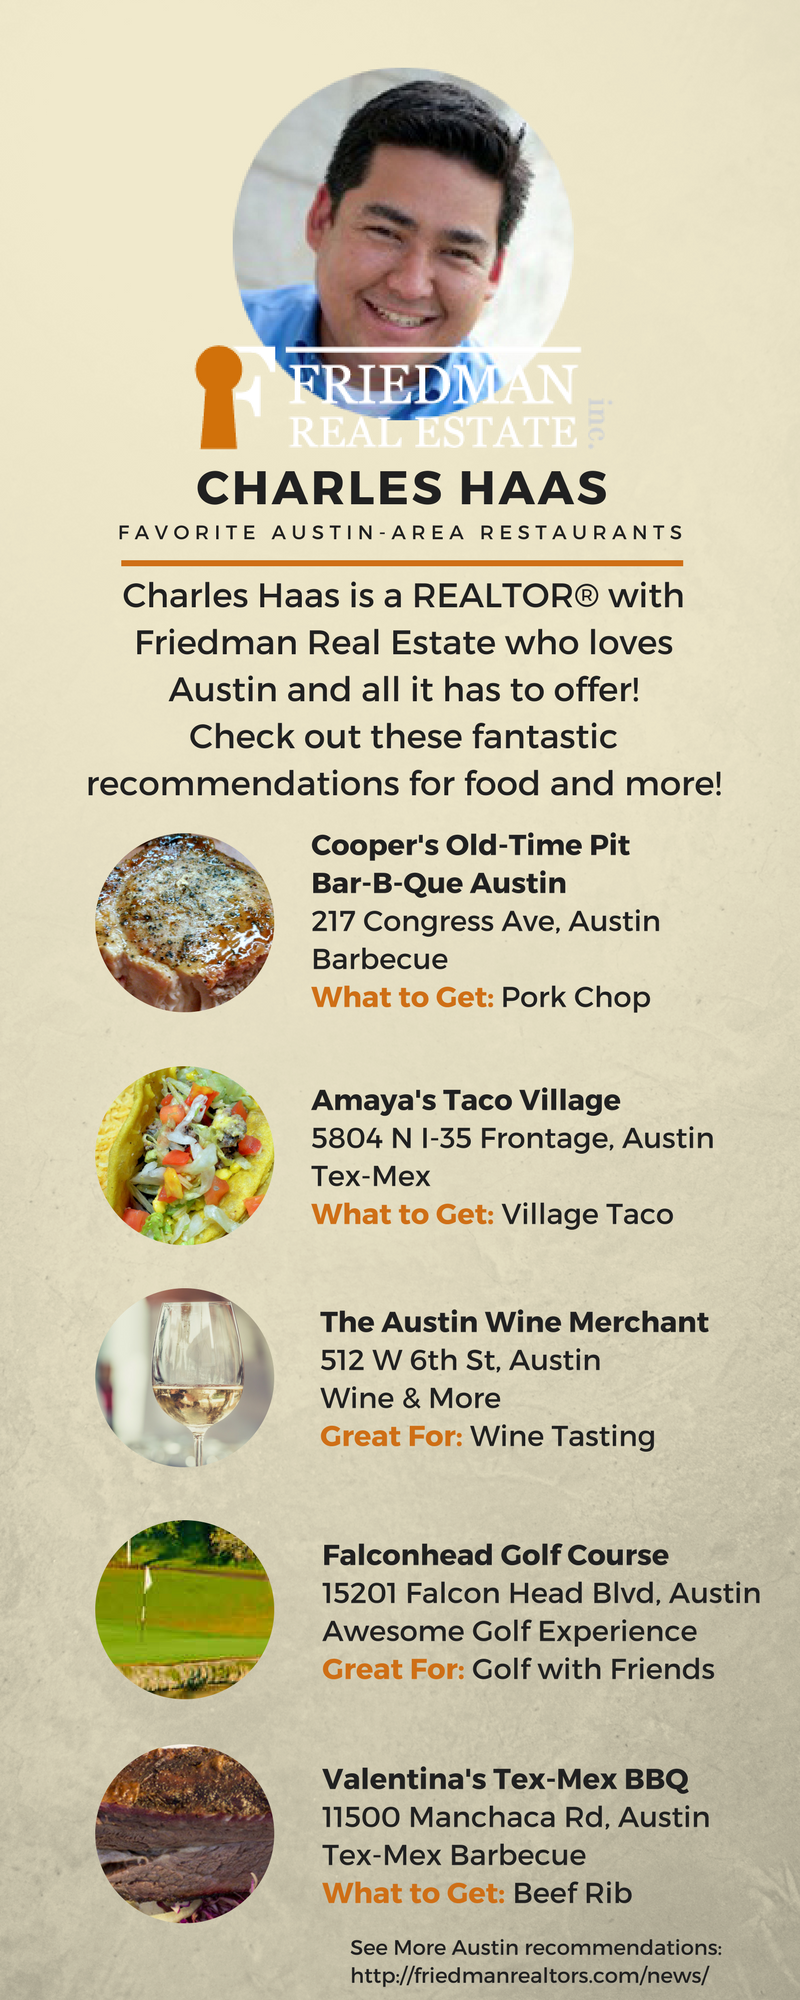 Charles-Haas-Friedman-Real-Estate-Austin-Favorite-Places